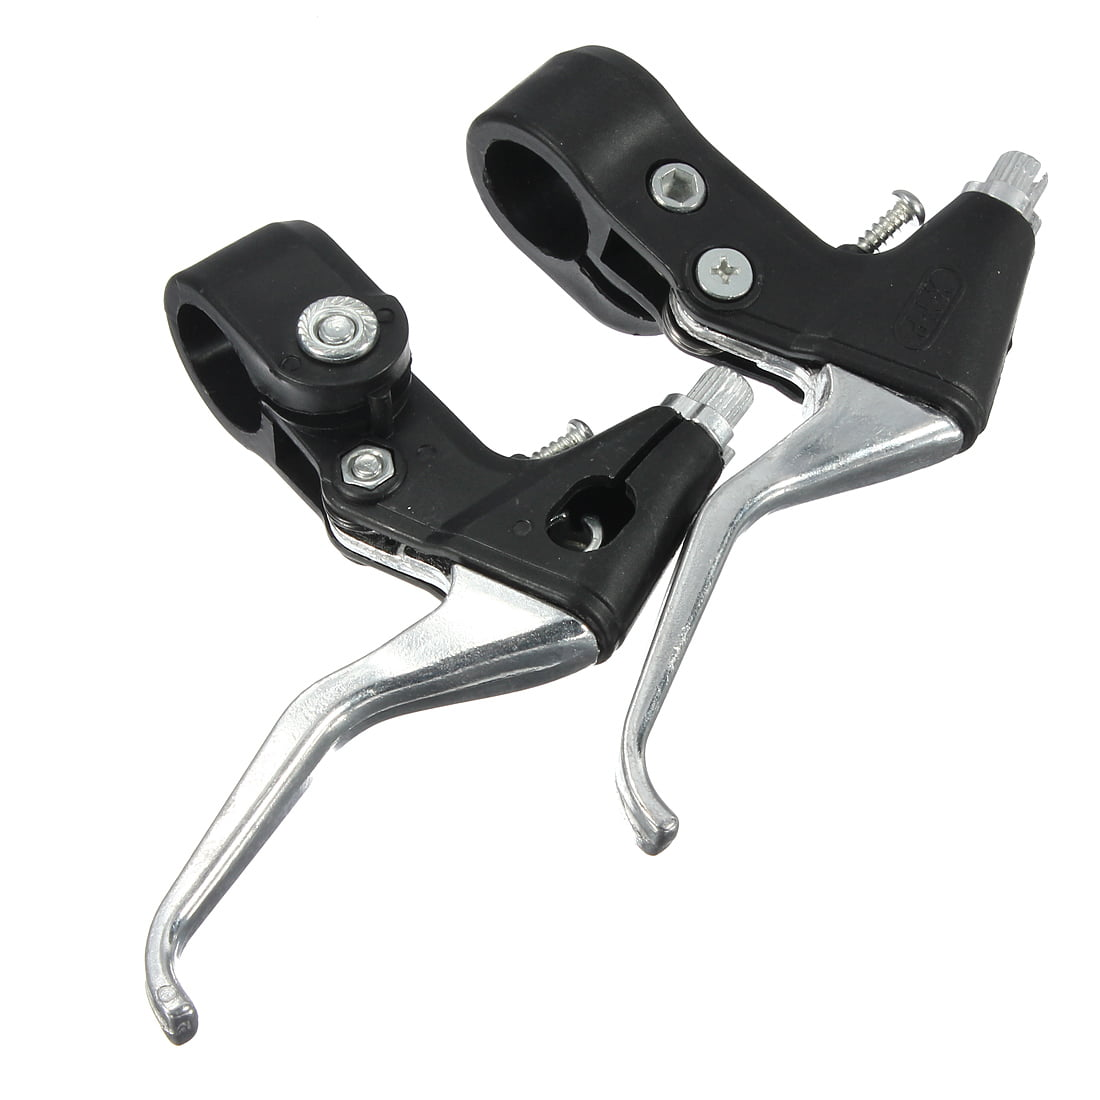 1 Pair Aluminum Alloy Bike Bicycle Cycling MTB Brake Levers Left /& Right Handles